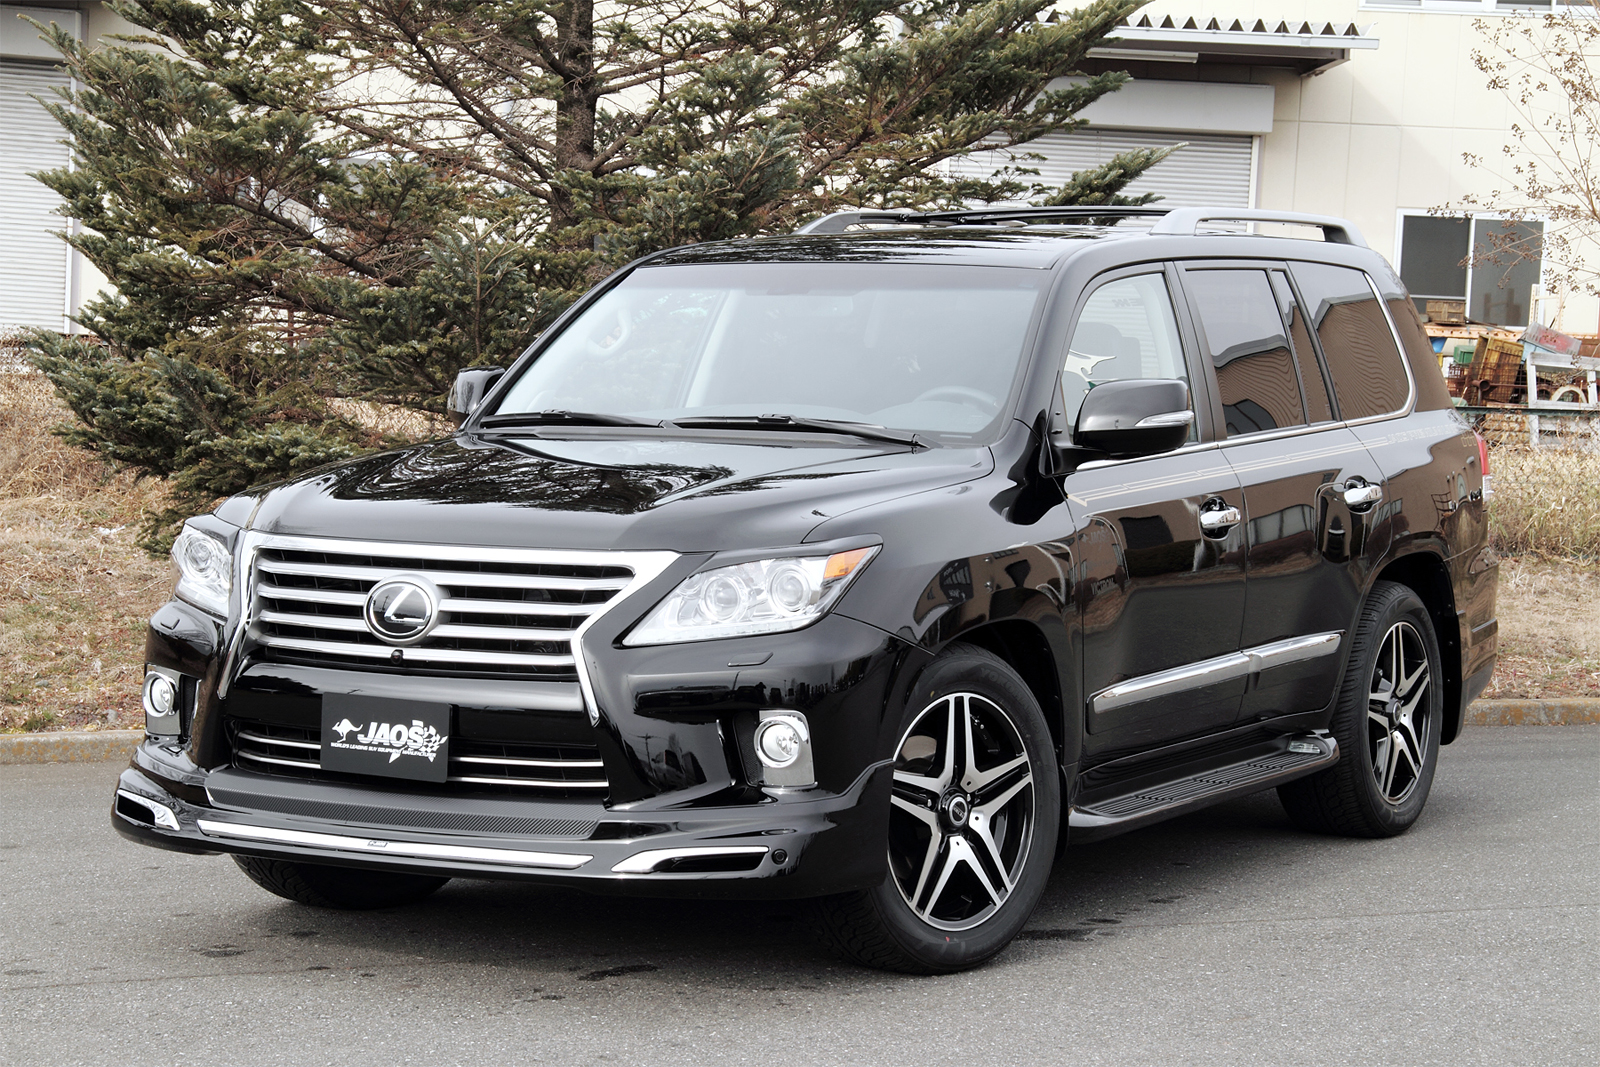 2018 lexus lx 570 review new car release date and review 2018 amanda felicia. Black Bedroom Furniture Sets. Home Design Ideas